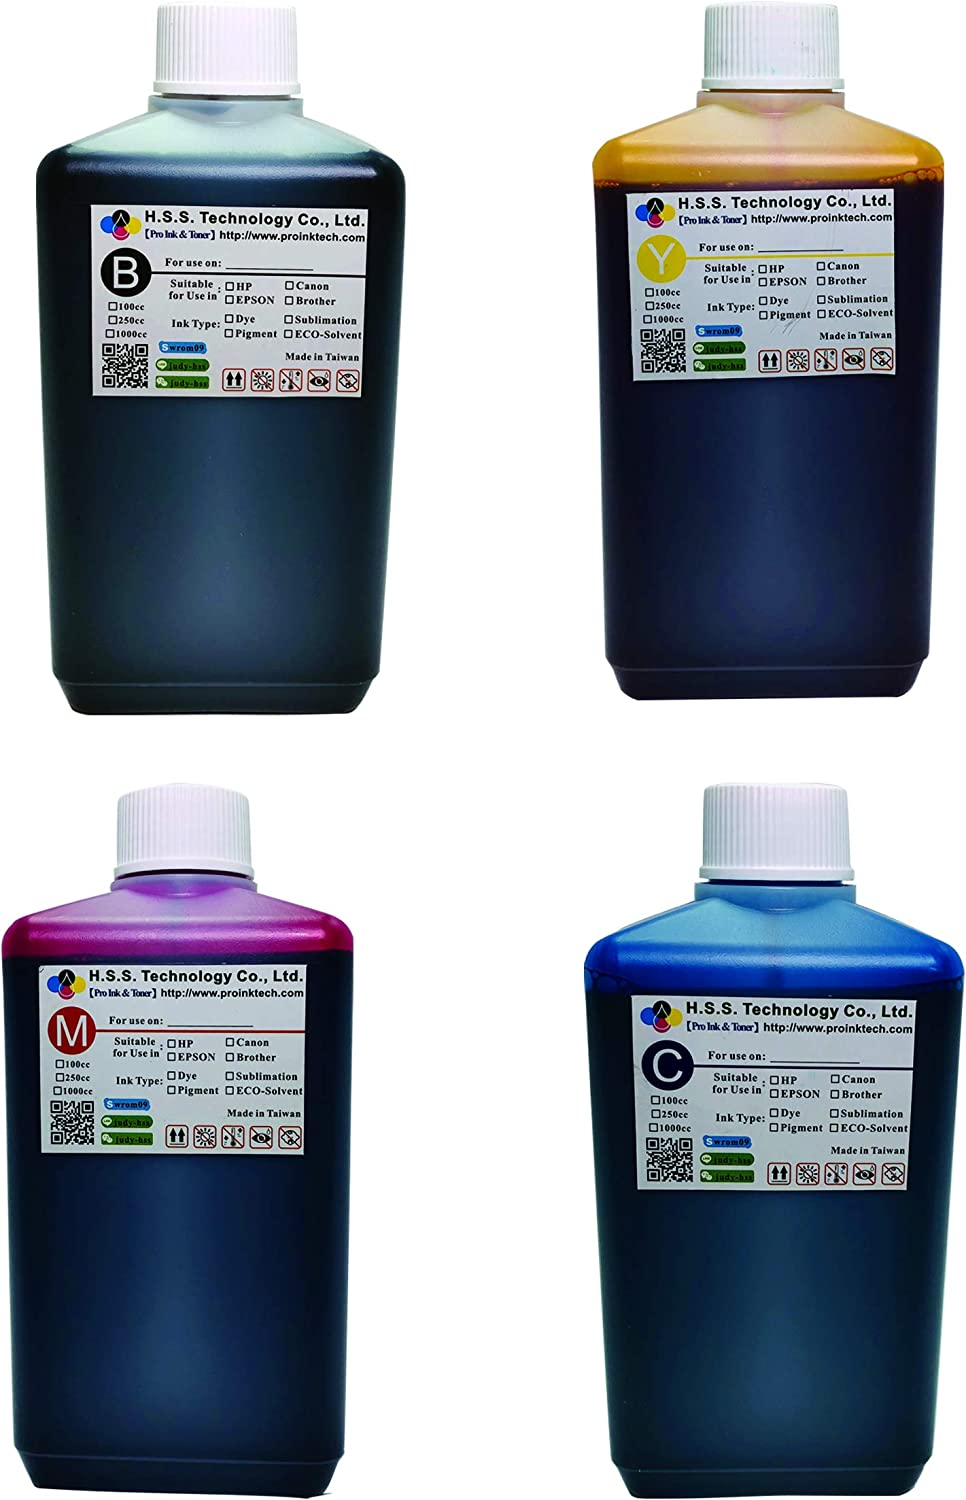 PRO INK&TONER Refill Compatible Ink (1000ml / 1Set), Newest Nanometer Technology for HP C4280 C4385 C4480 C4580 C5280 D4260 D4360 D5360 J5780 J6480